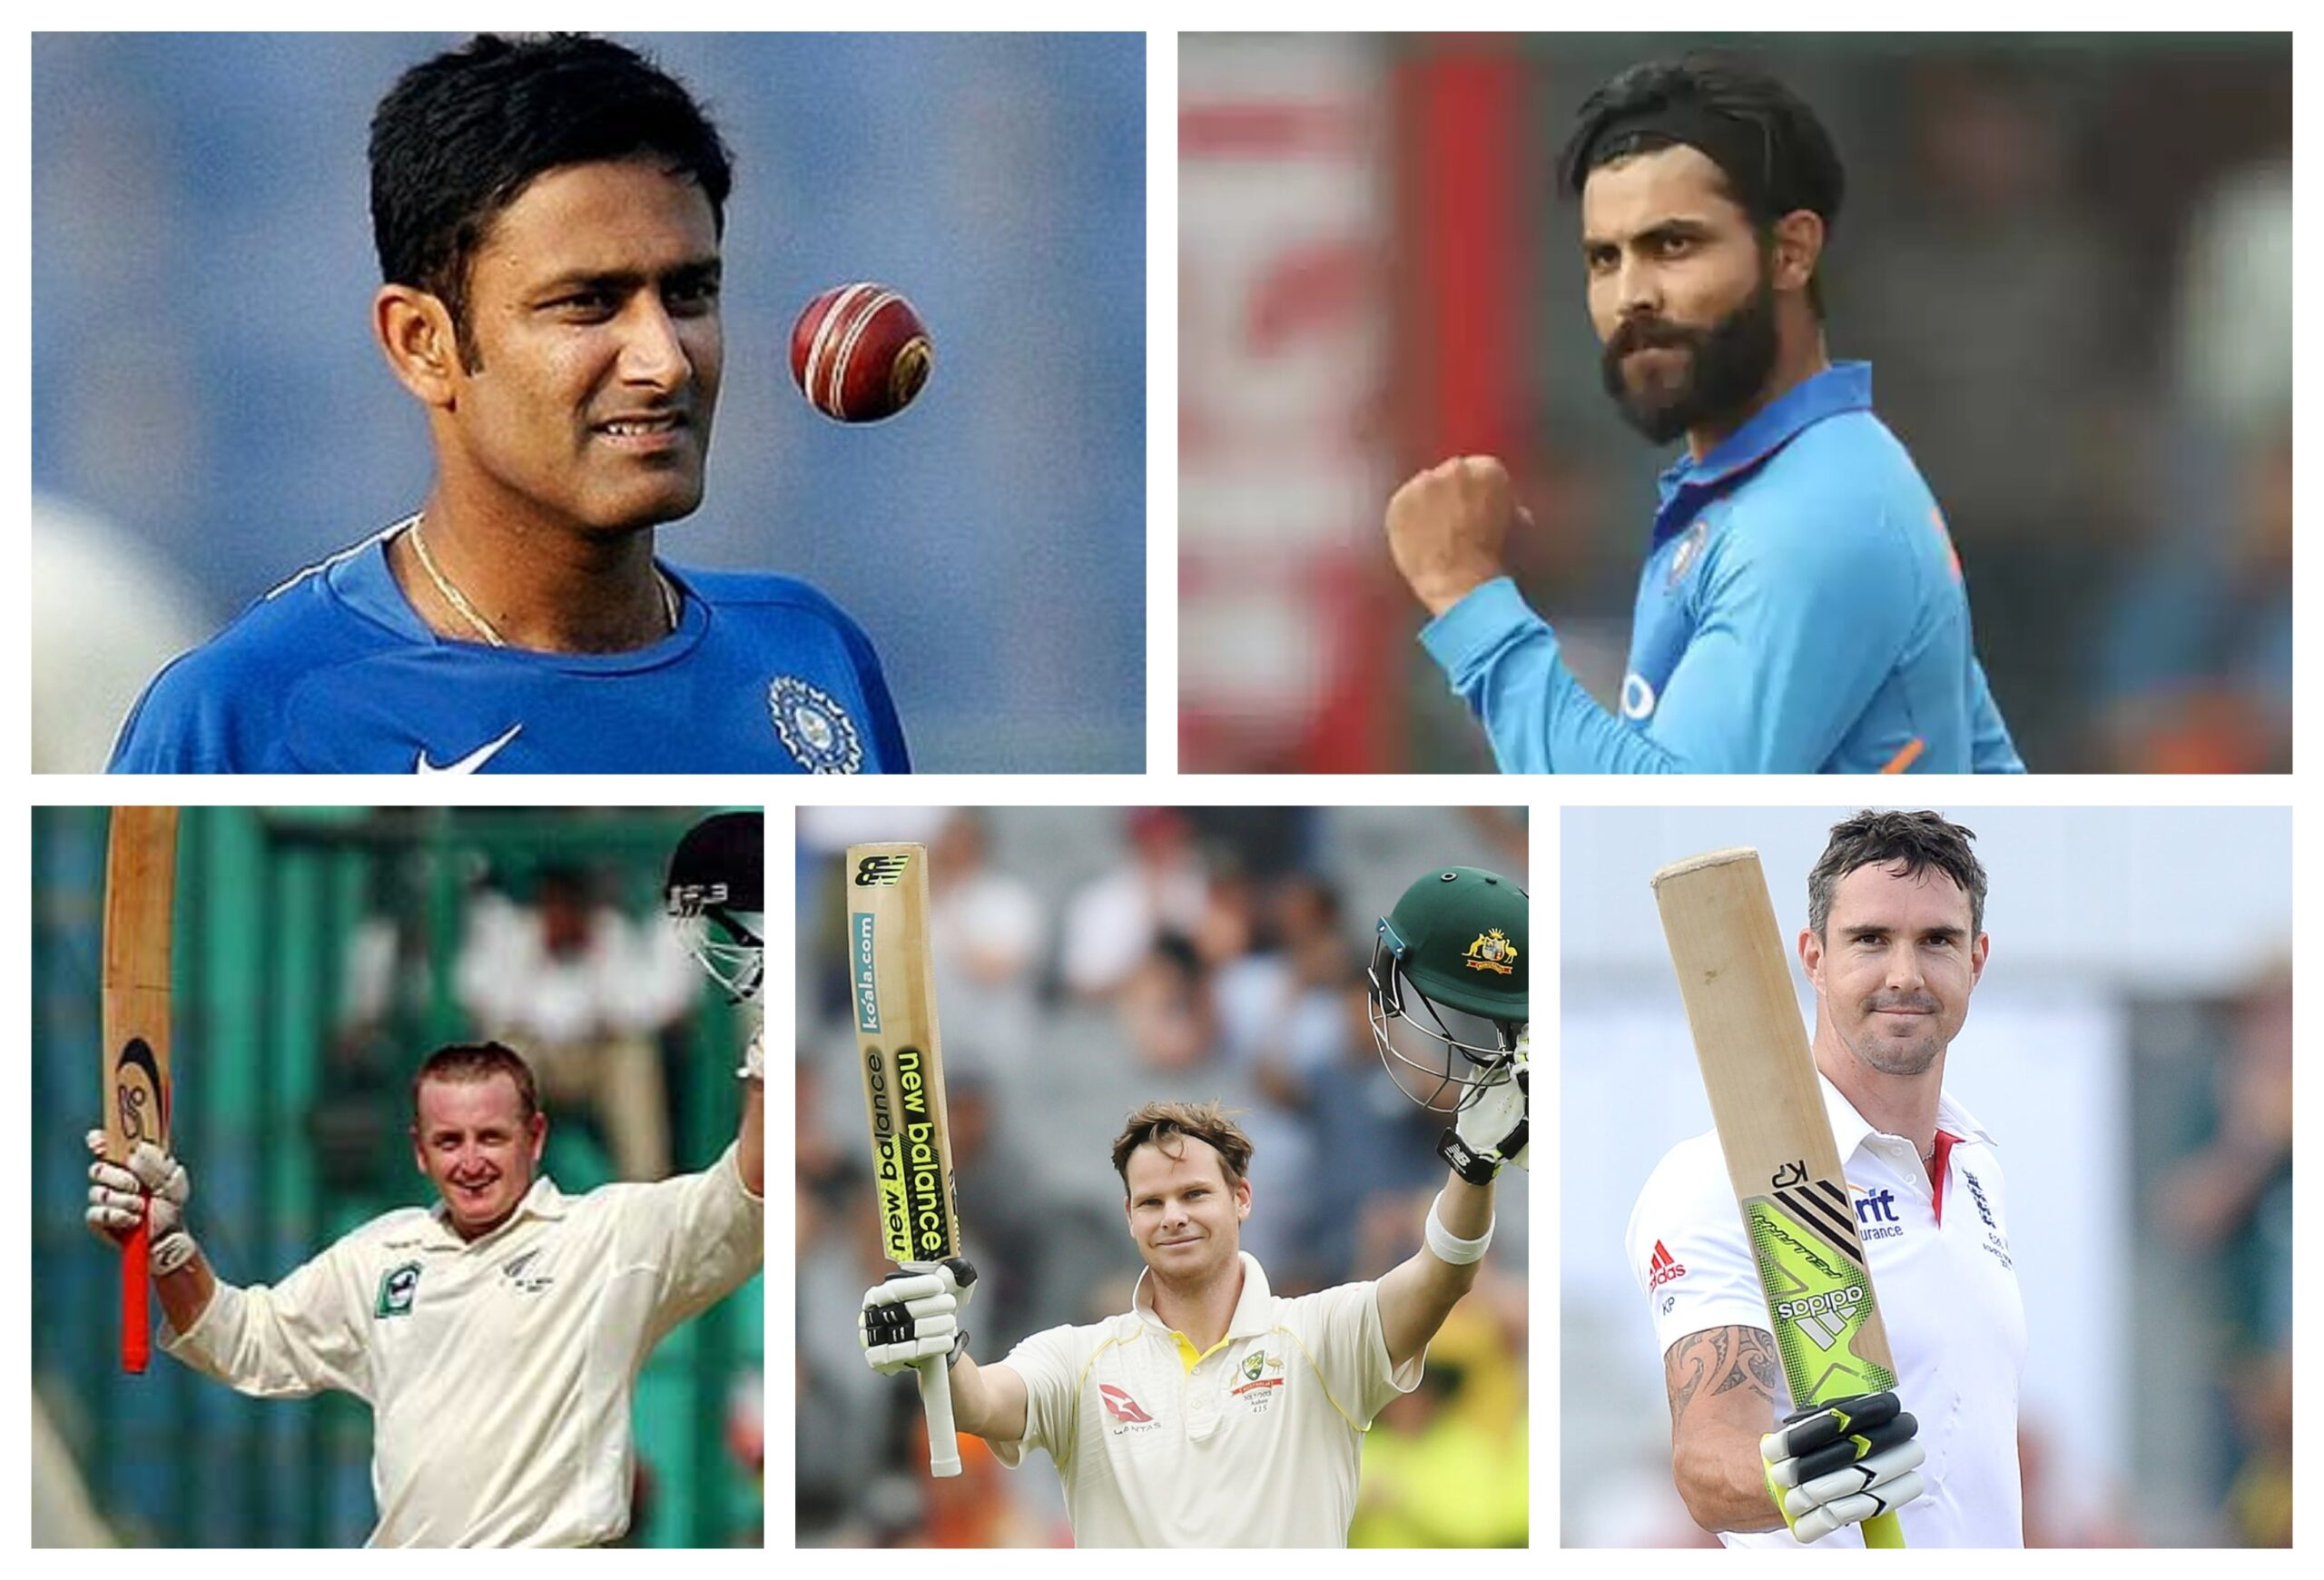 Top 5 Cricketers who changed their roles after specializing in one